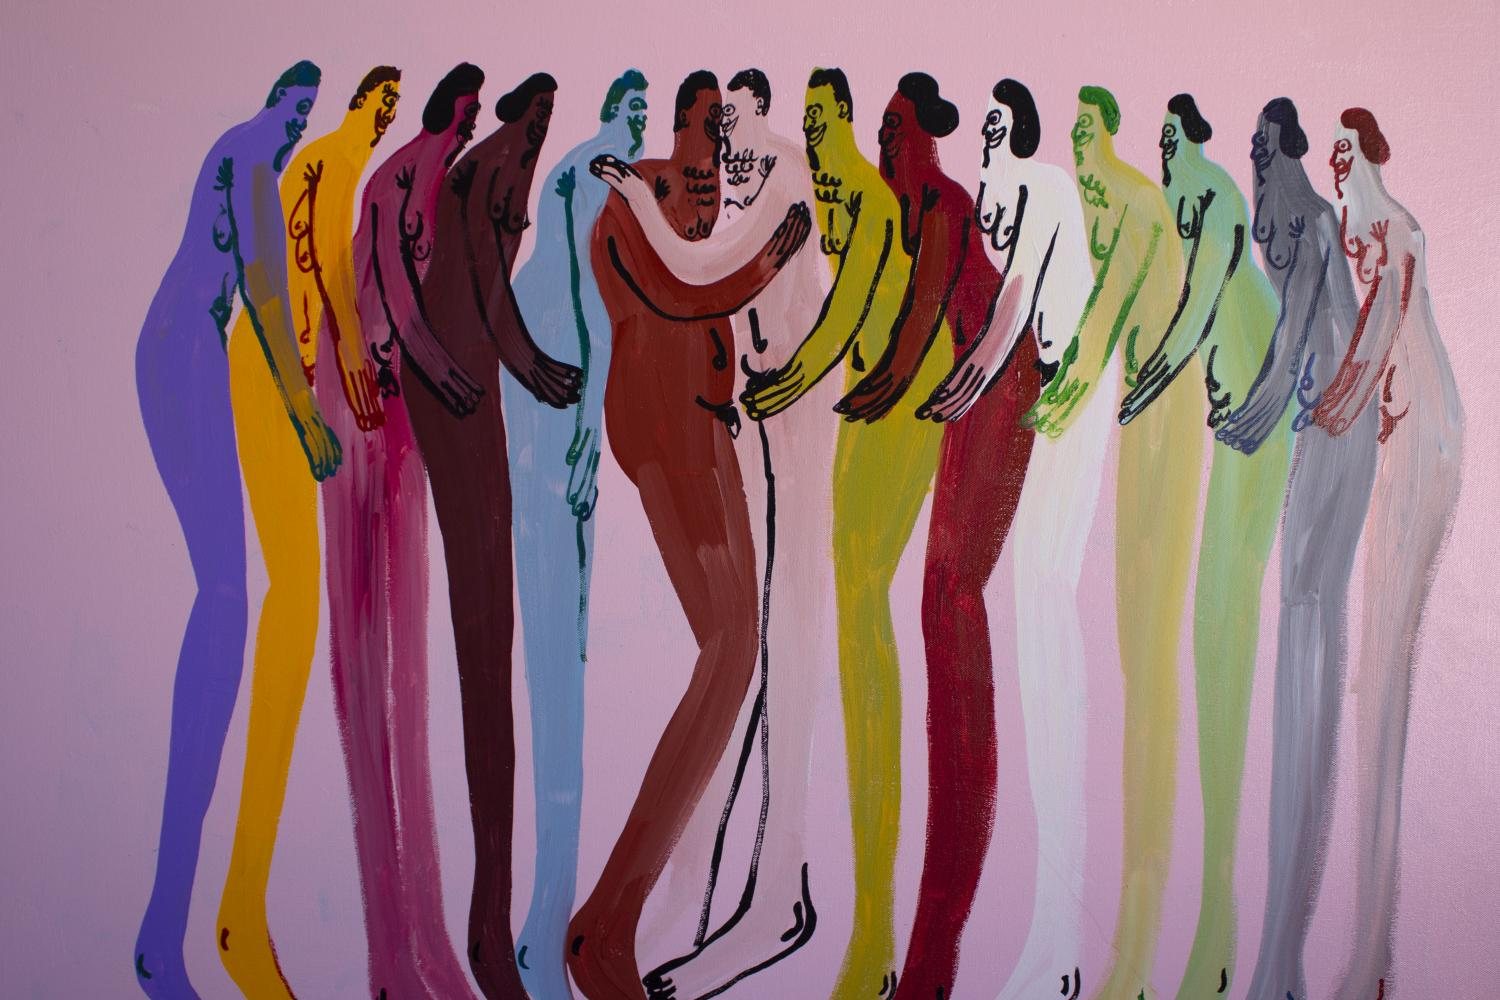 Figural painting of over a dozen naked bodies of different colors holding each other affectionately, on a pink background, by Jeffrey Cheung